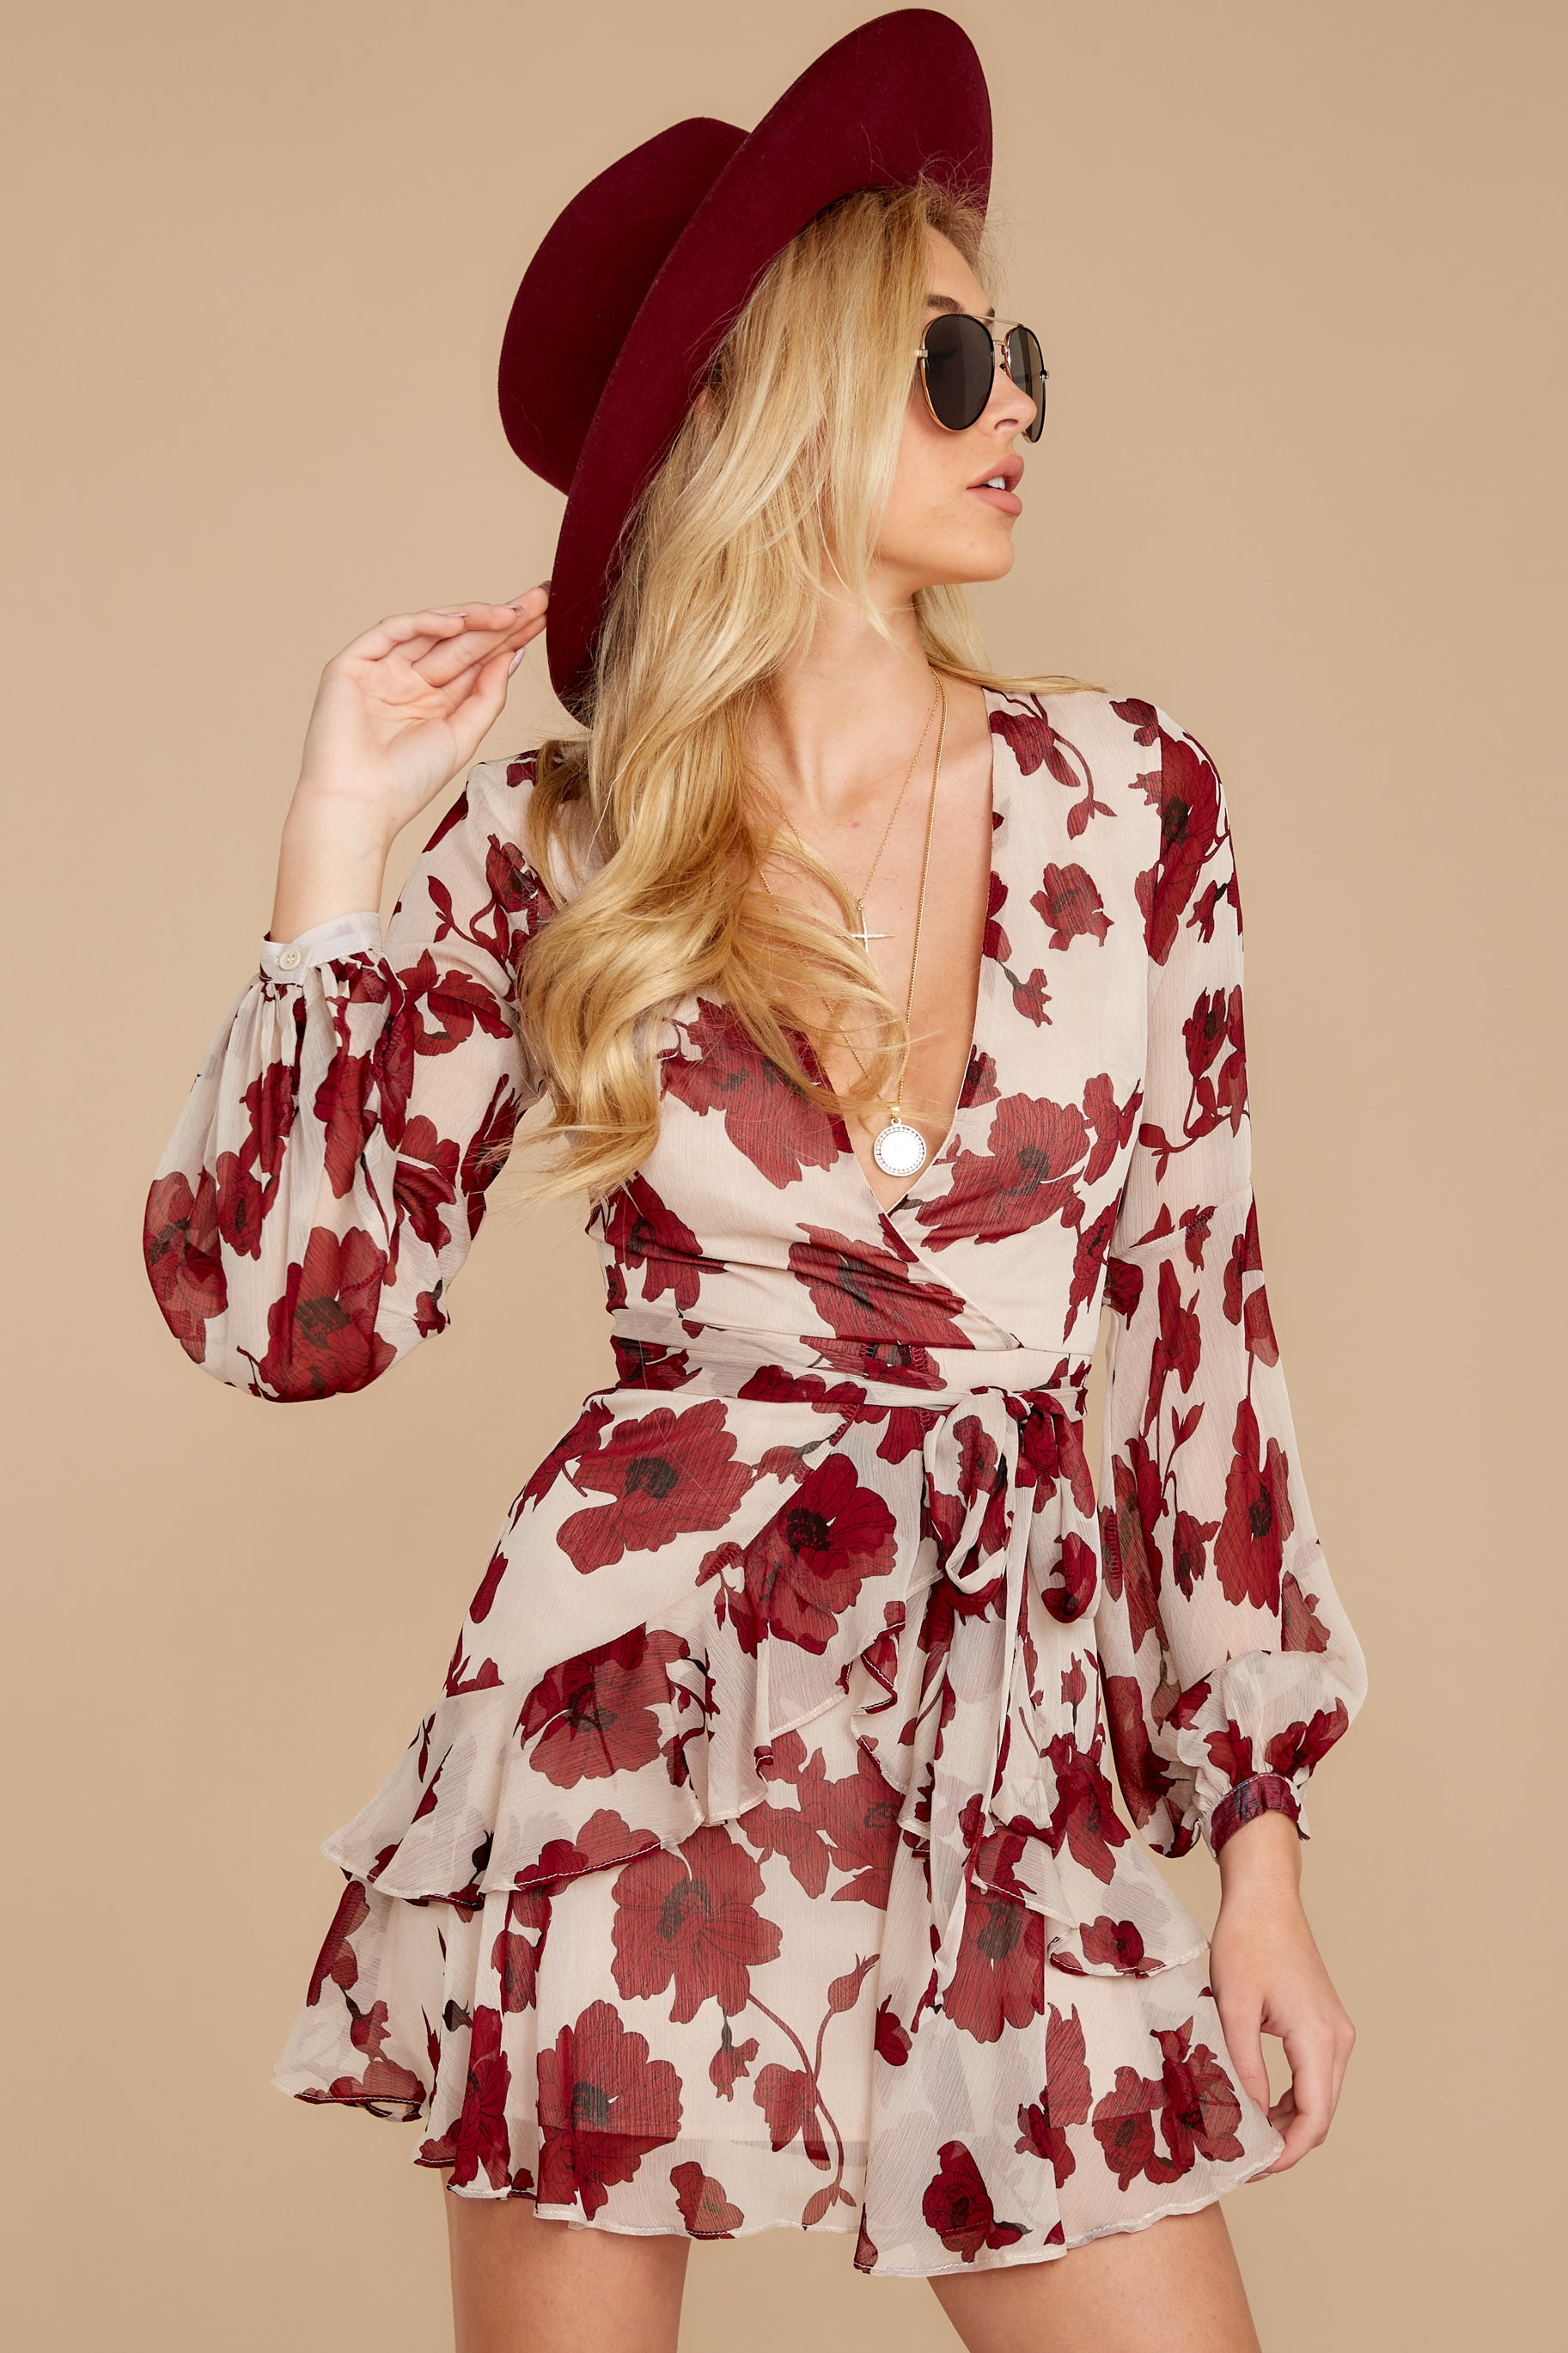 5 Simply Yours Burgundy Floral Print Dress at reddress.com